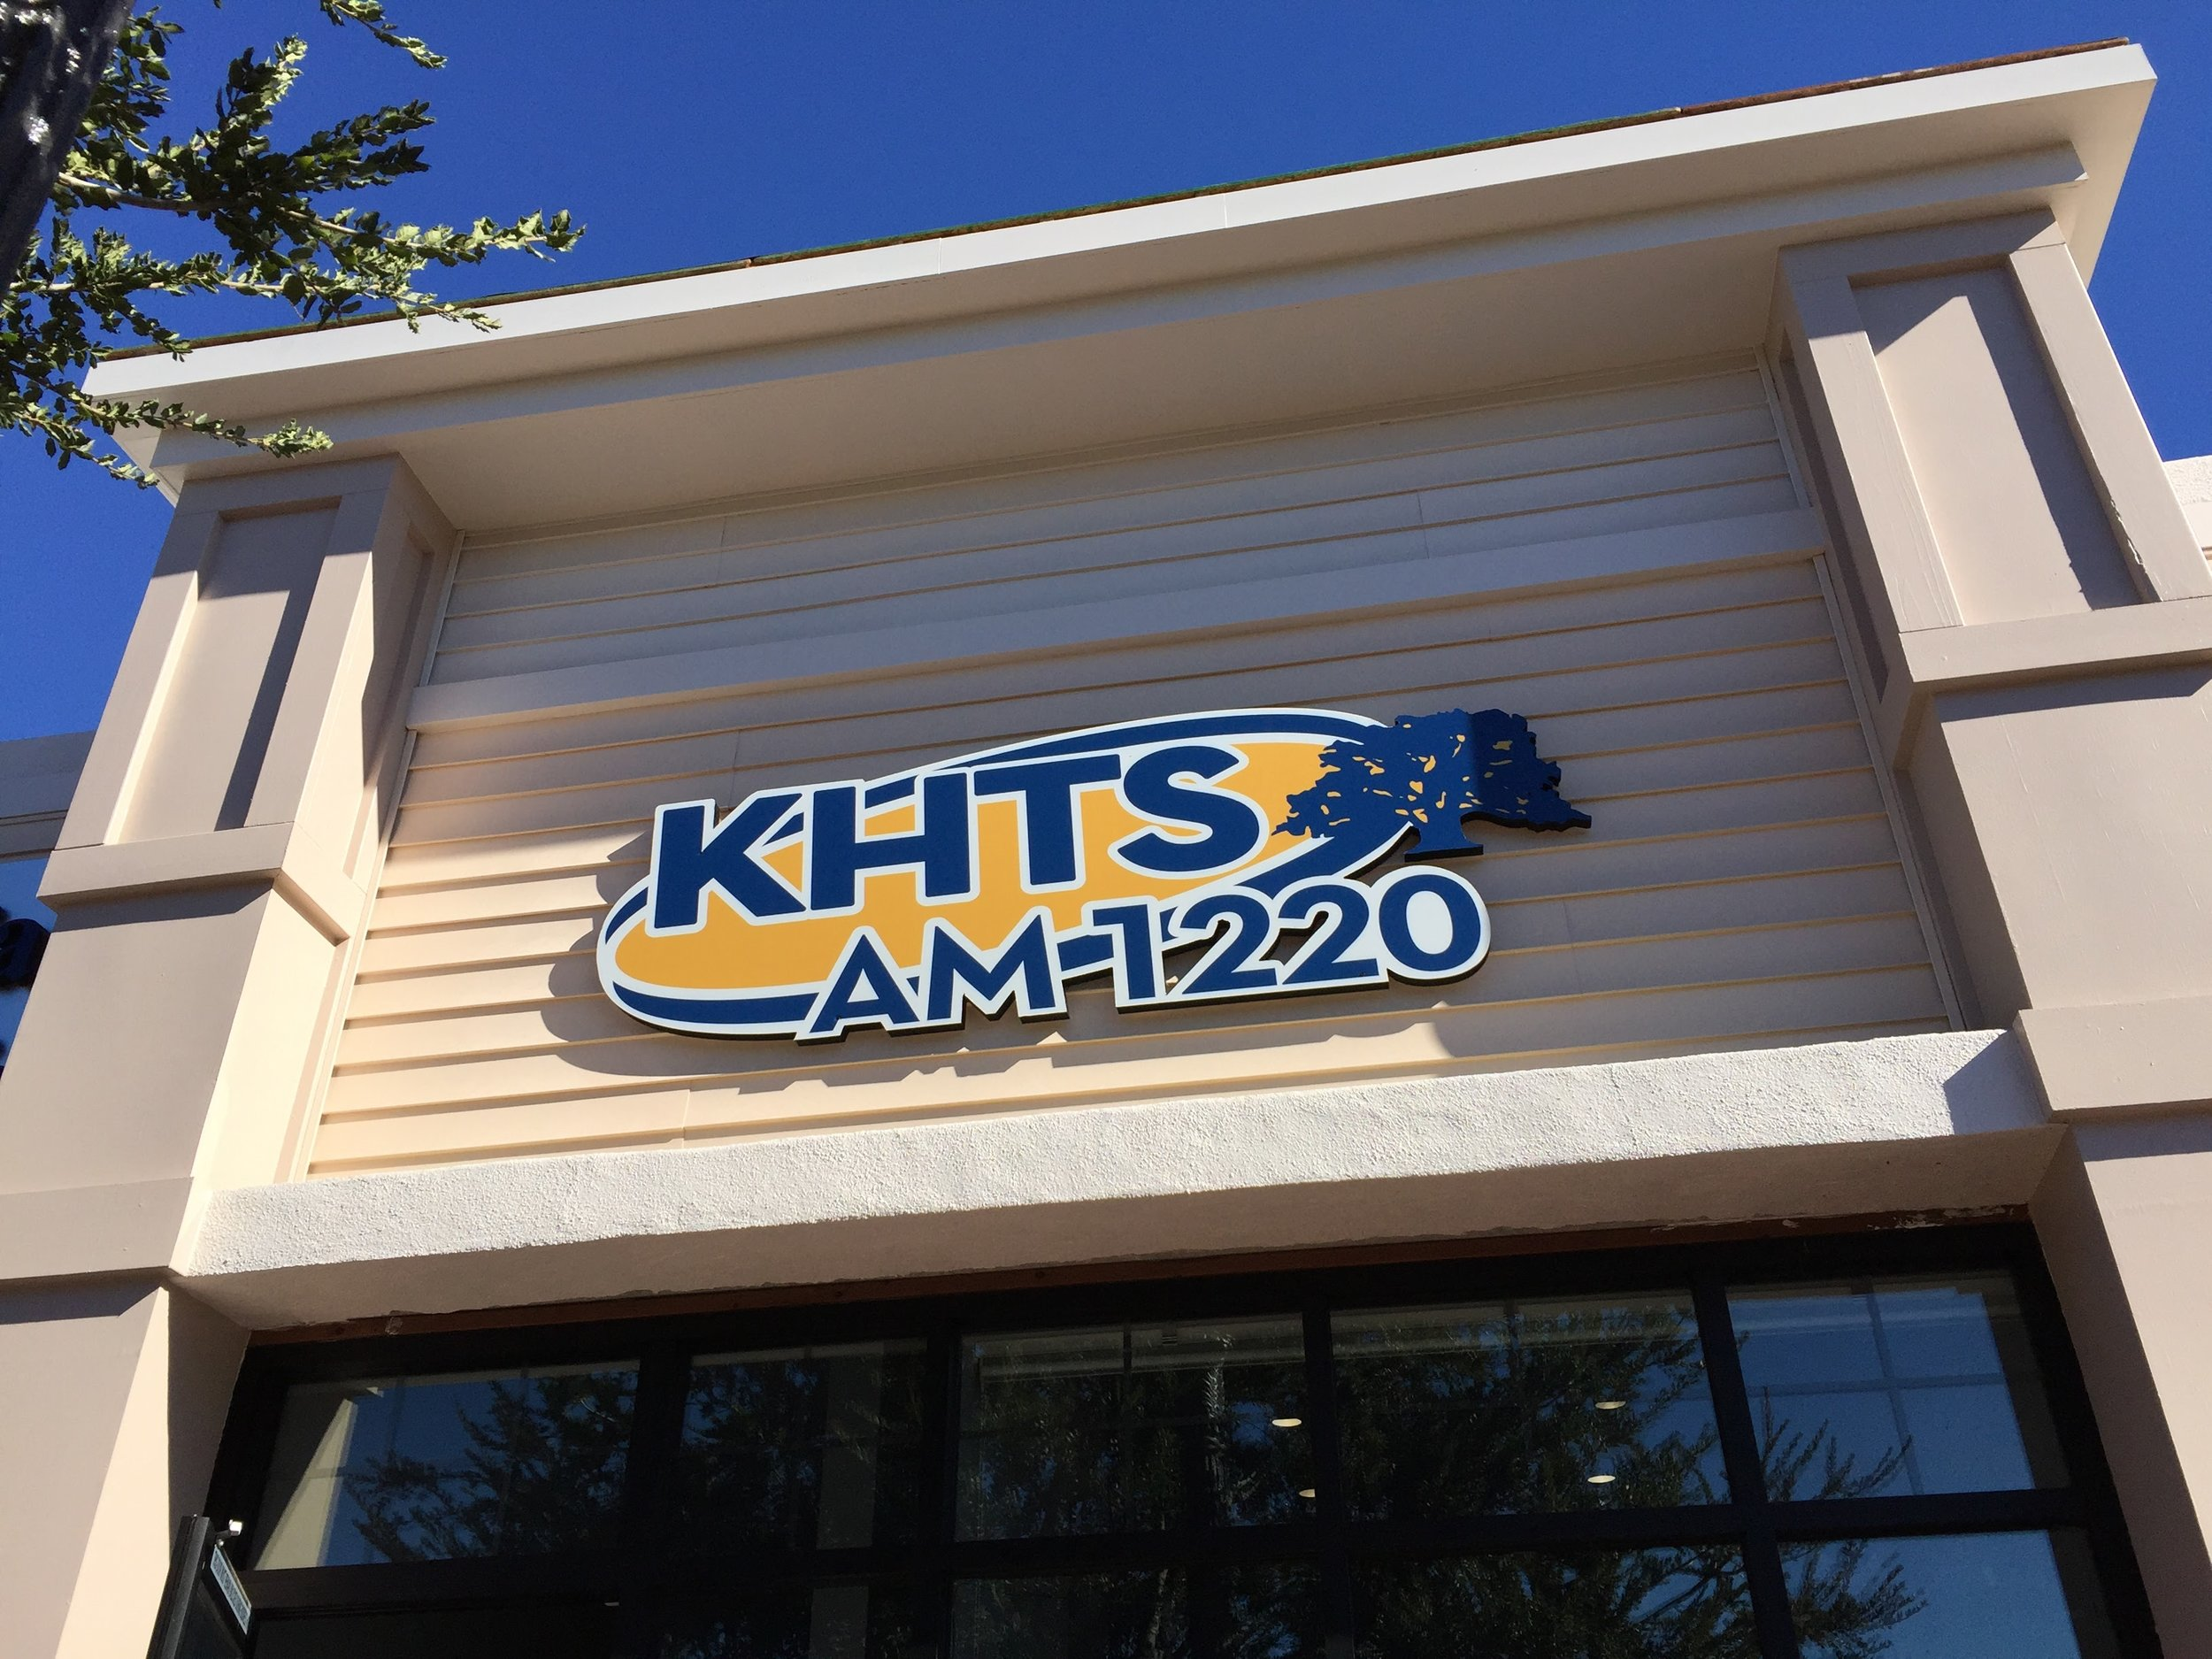 KHTS Radio (Broadcast)    I currently head the video department at Santa Clarita's only radio station. It's been interesting coming from a film background to tell stories in a broadcast environment. But, I've been very fortunate to be able to get creative and tell many visually interesting stories. My work here ranges from editing, voice over, motion graphics and photos.